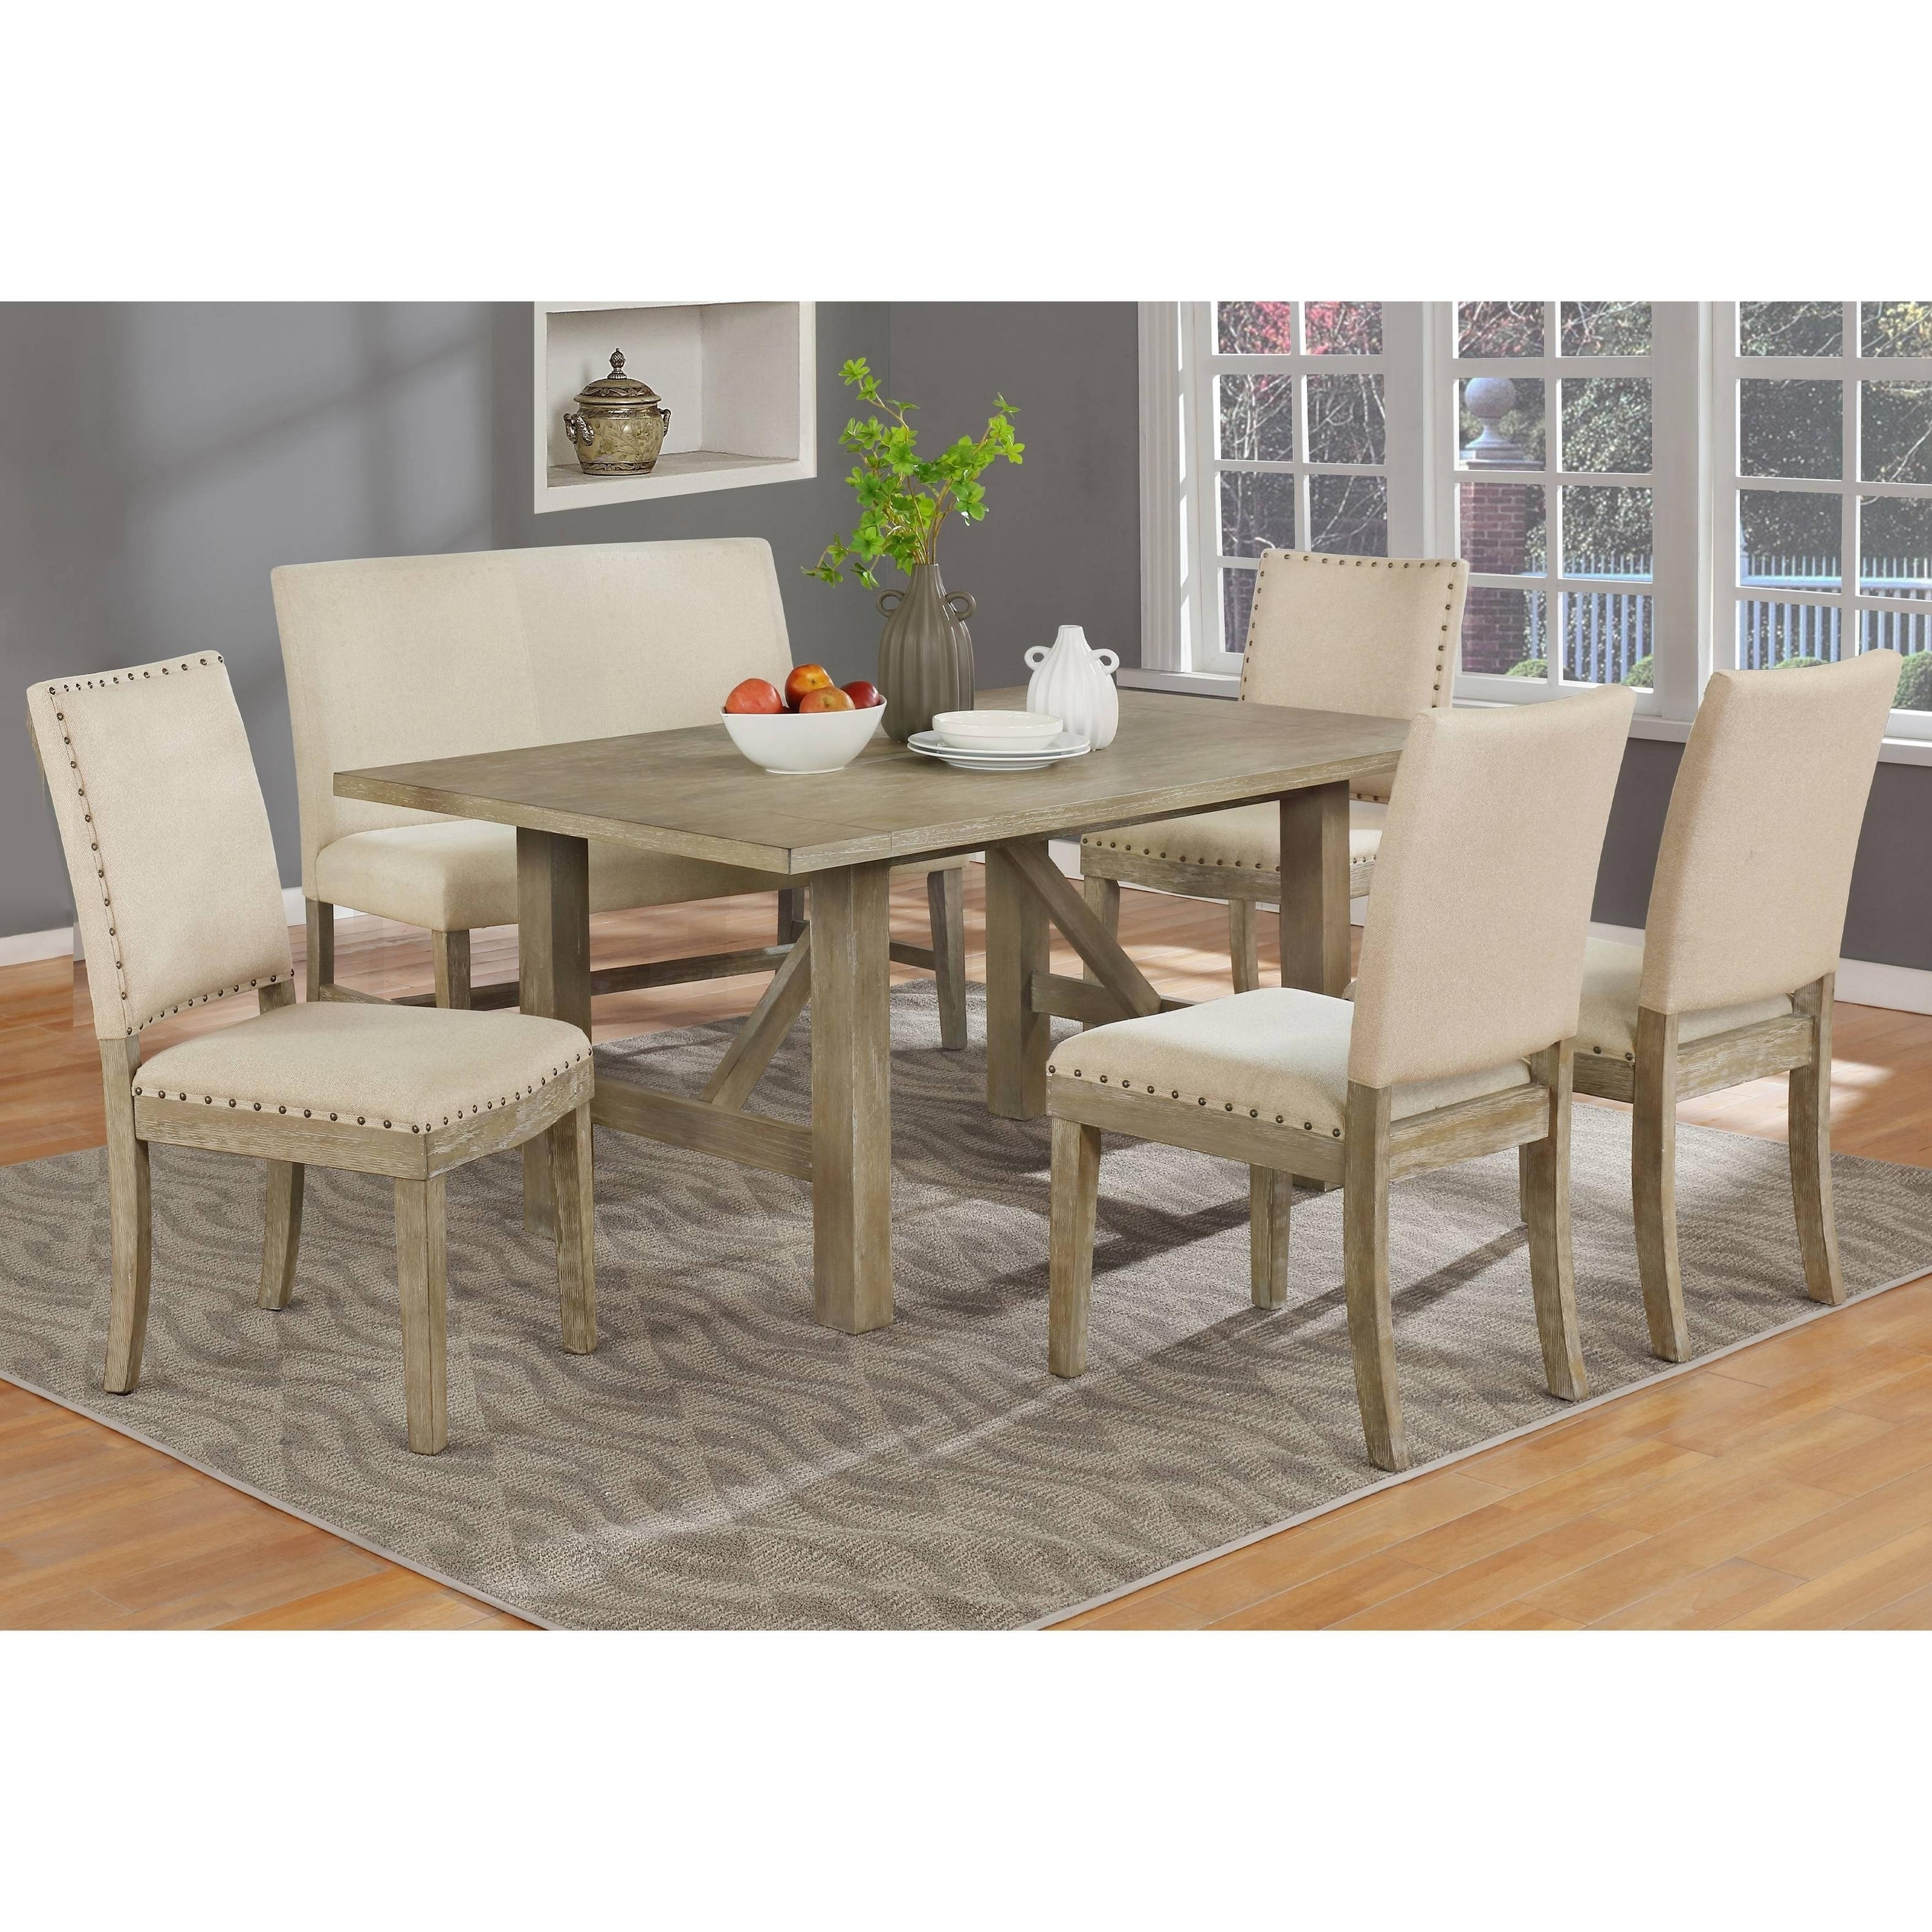 Best Quality Furniture Rustic Beige Dining Set With Upholstered Dining Chairs And Bench On Sale Overstock 30933271